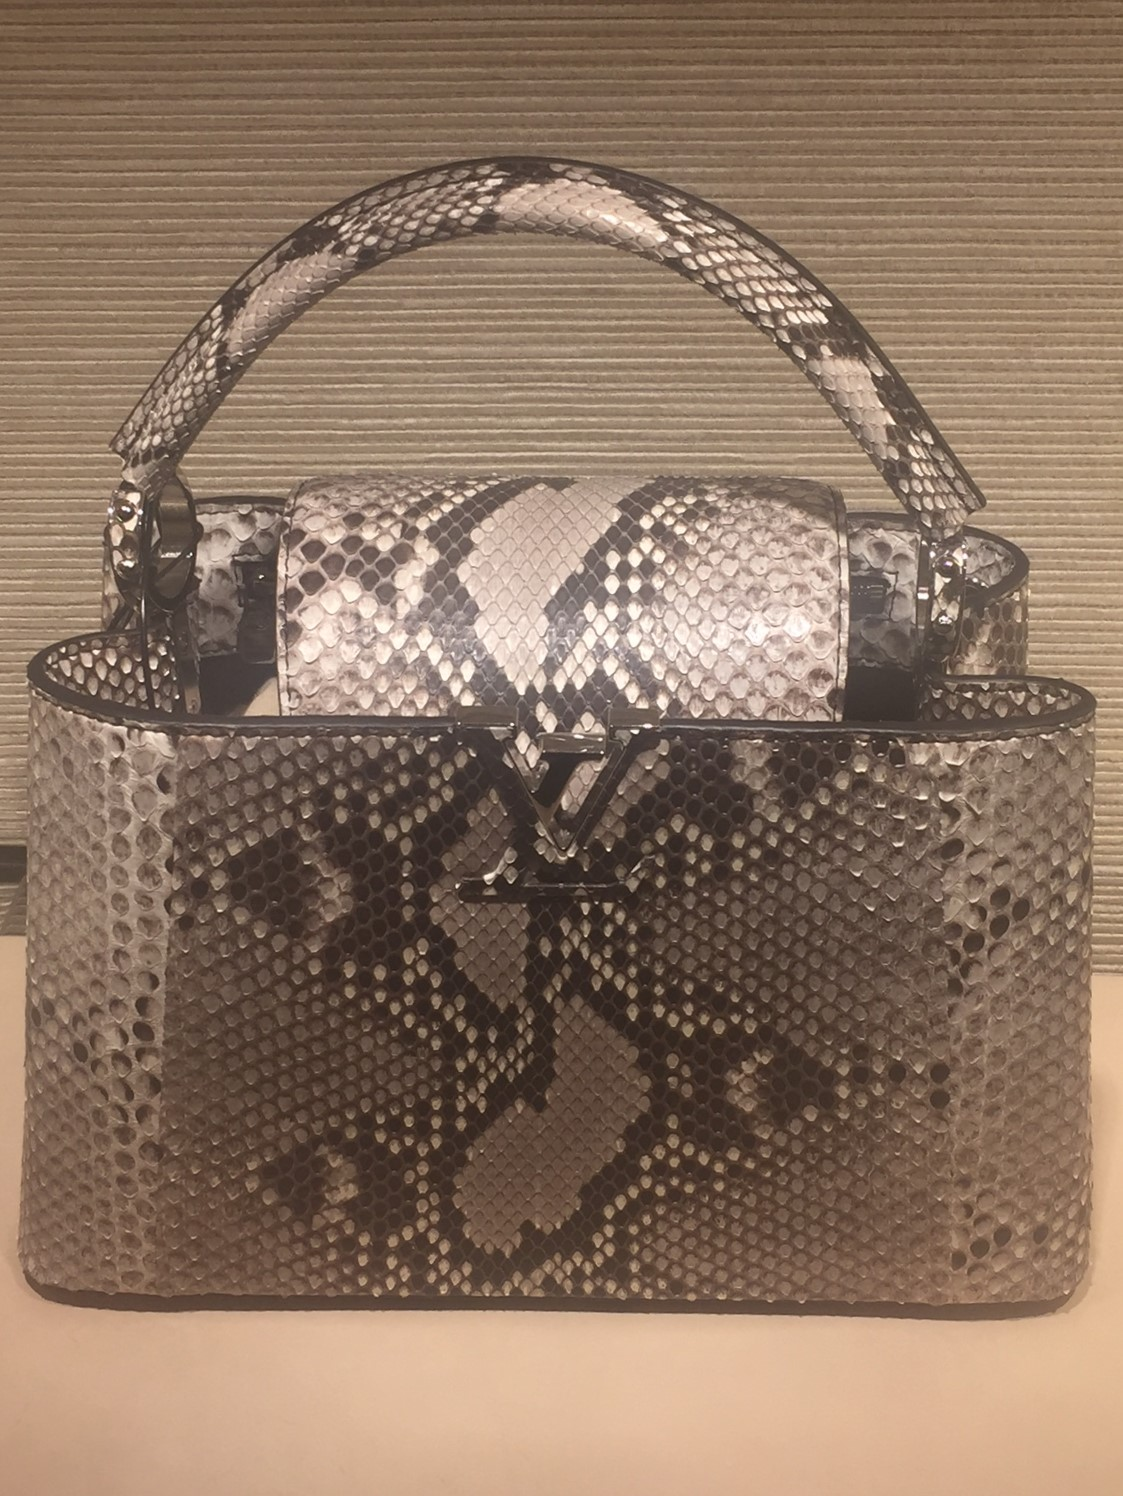 Louis Vuitton snakeskin handbag SS17